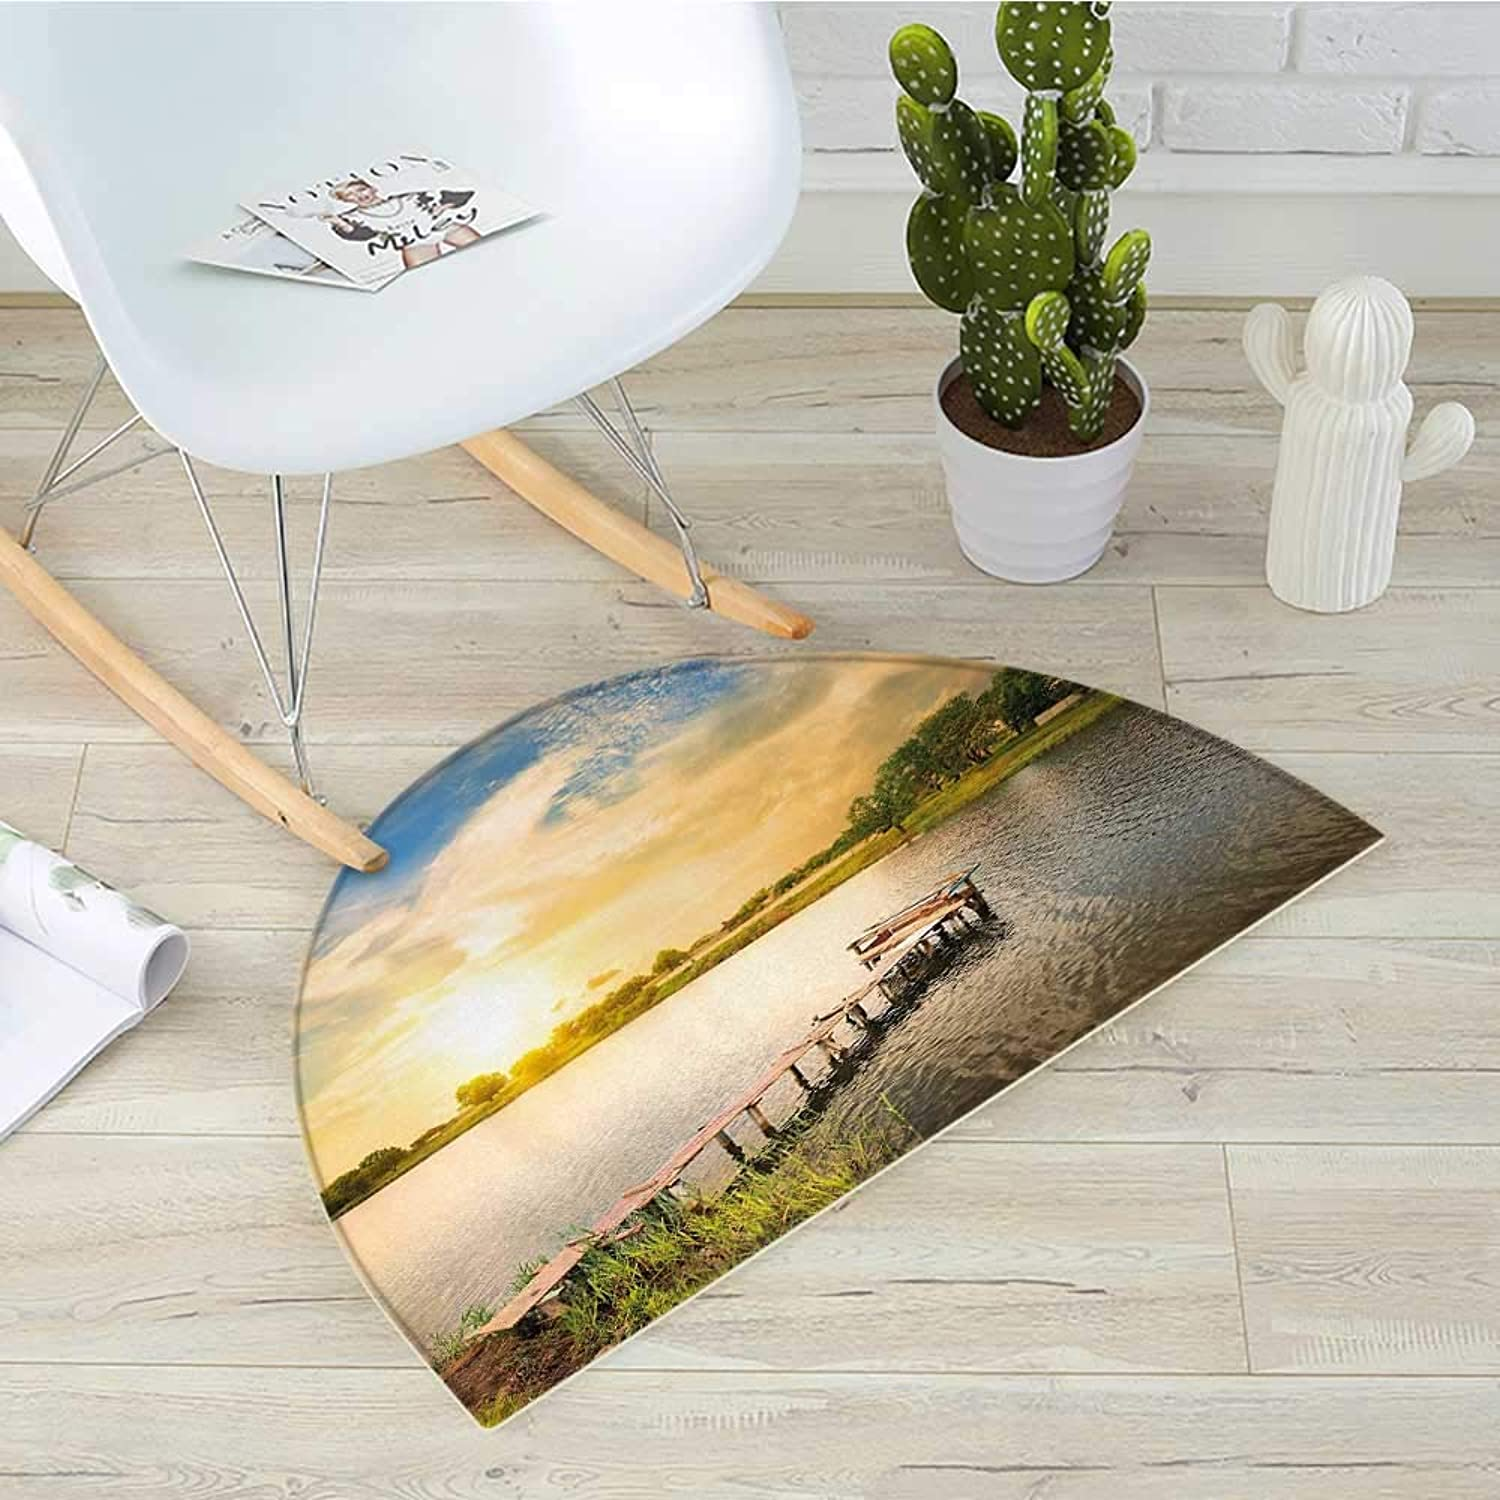 Nature Half Round Door mats Wooden Deck on The Lake Surrounded by Foliage Greenery Evening Sky Serene Landscape Bathroom Mat H 35.4  xD 53.1  Multicolor